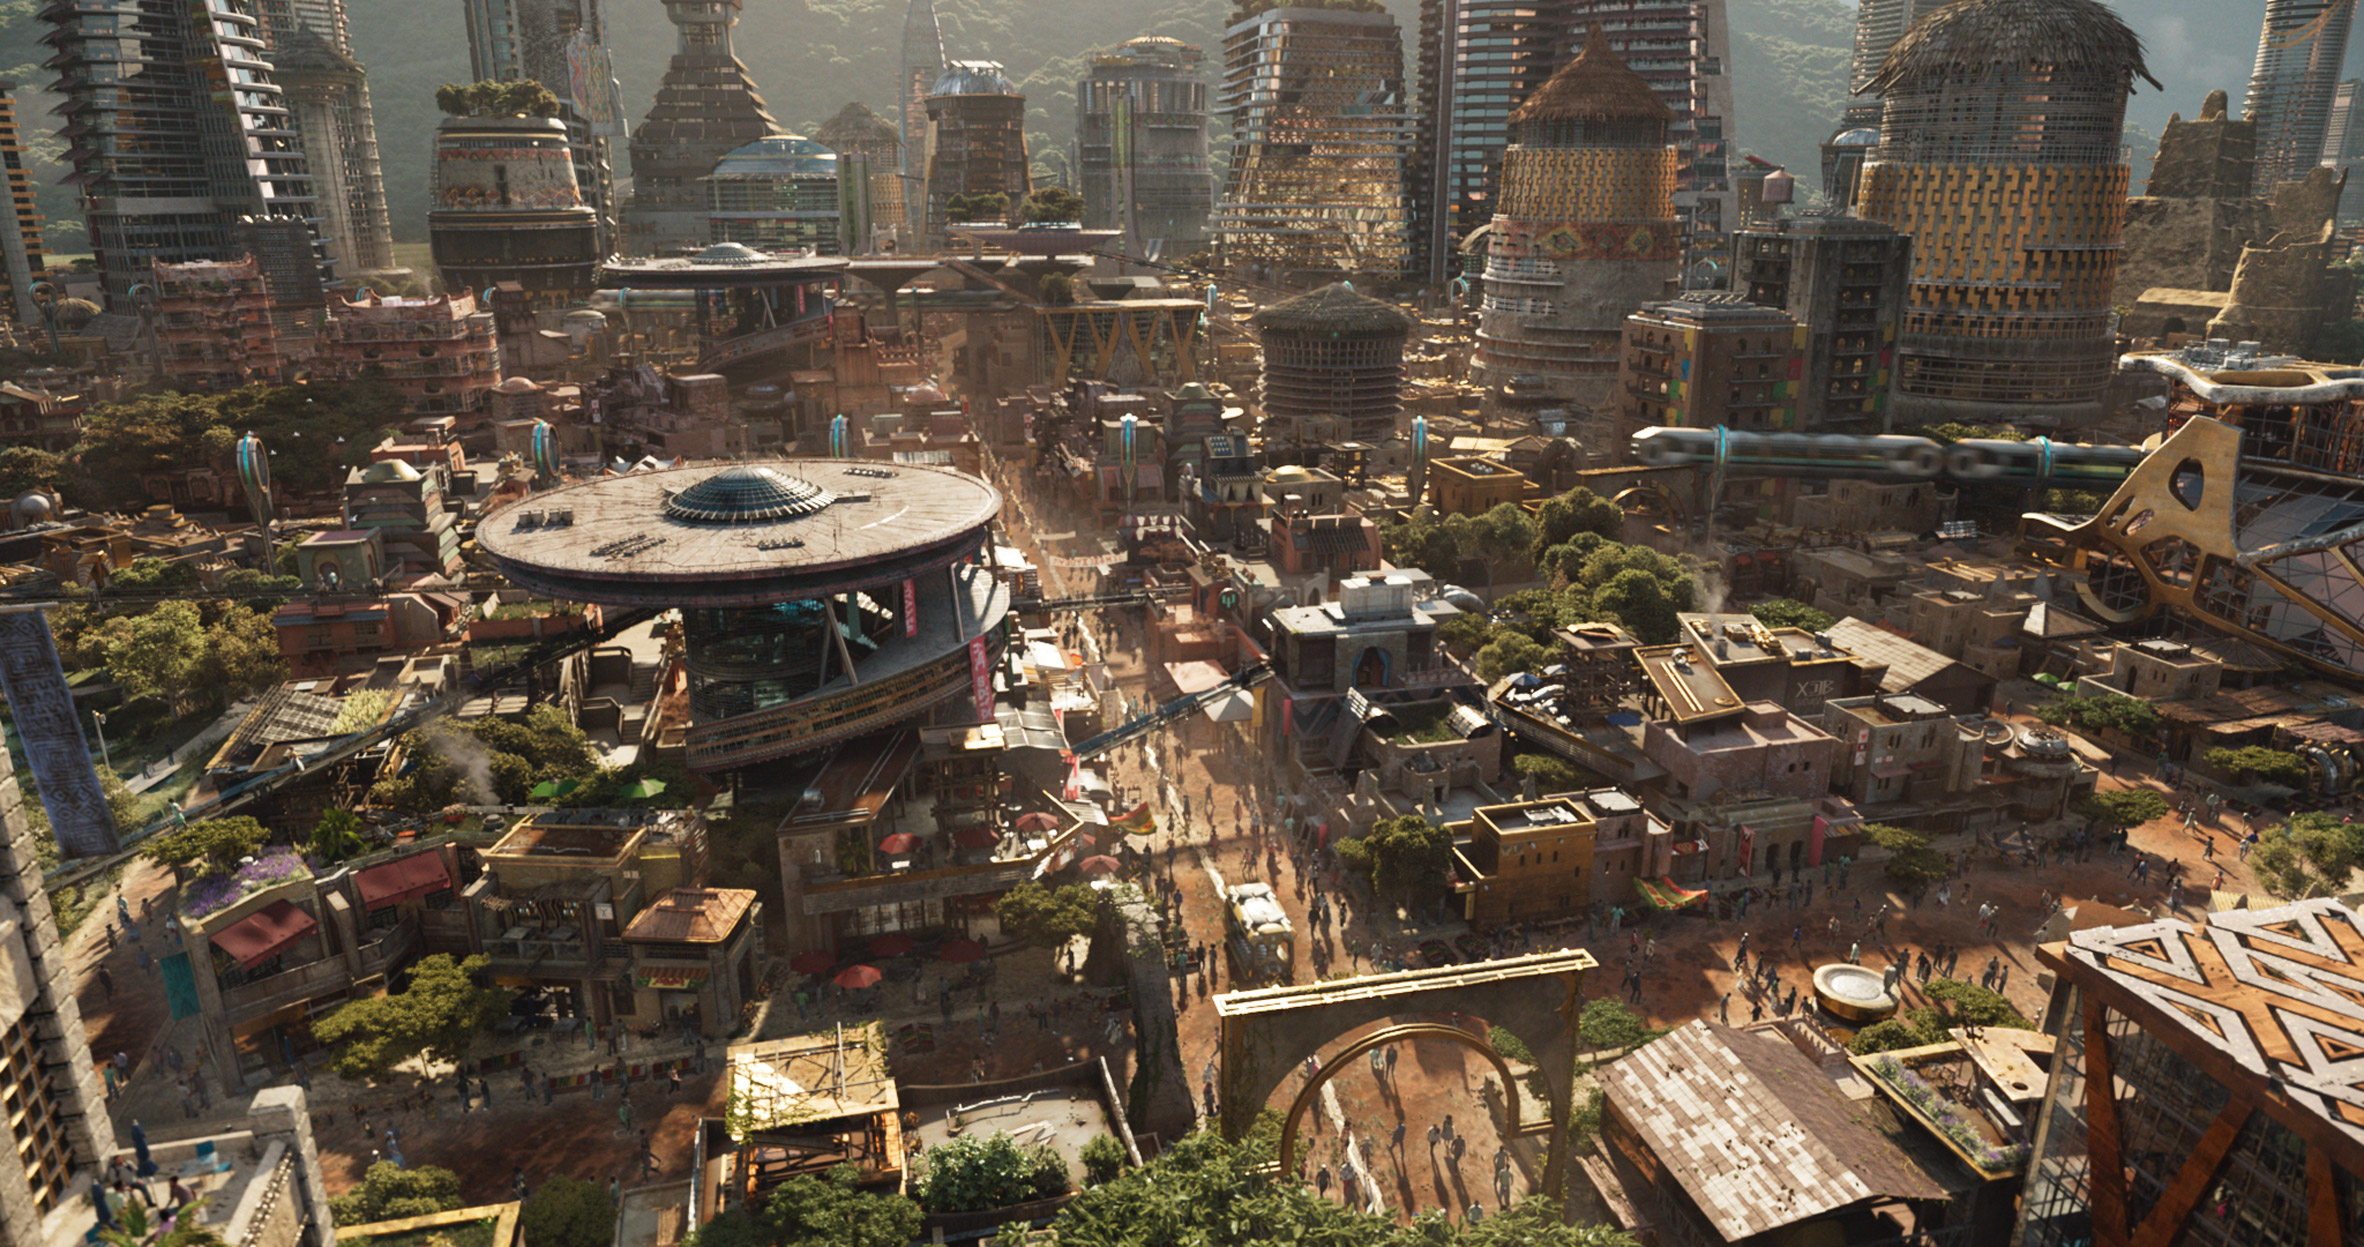 black-panther-marvel-hannah-beachler-set-design-feature-interview_dezeen_2364_col_75